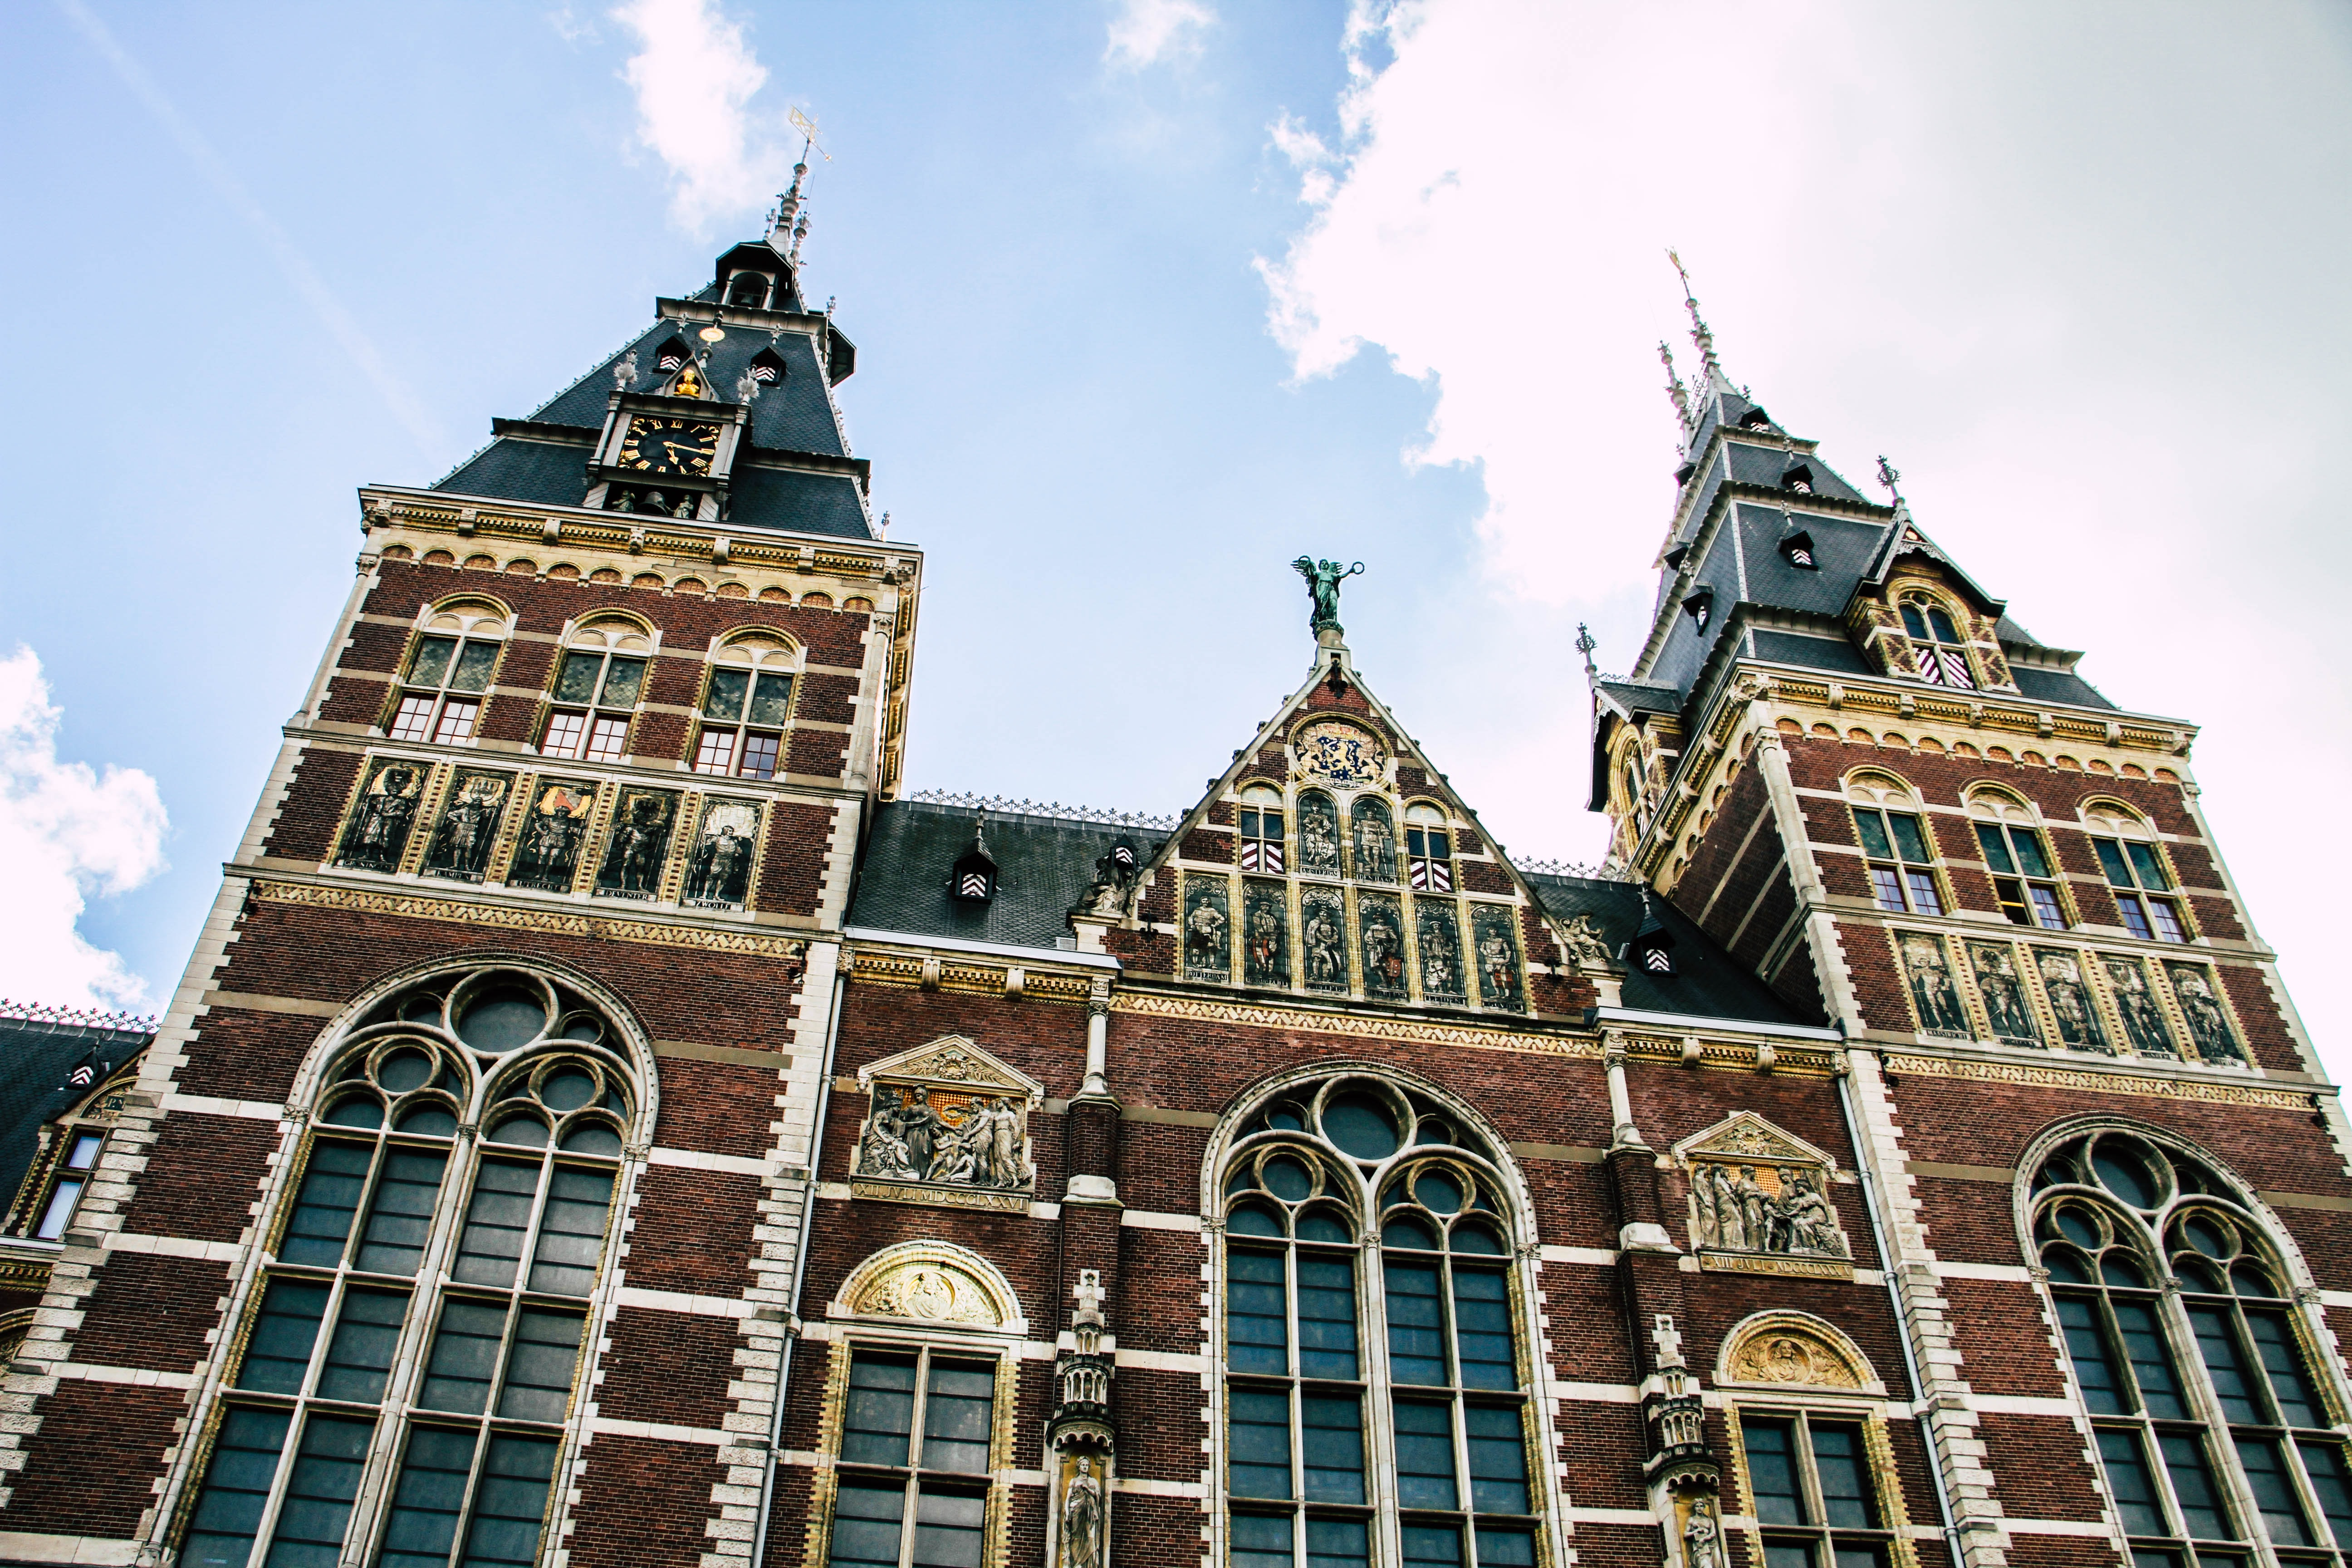 Stroll the Rijksmuseum, Things to do in Amsterdam in April